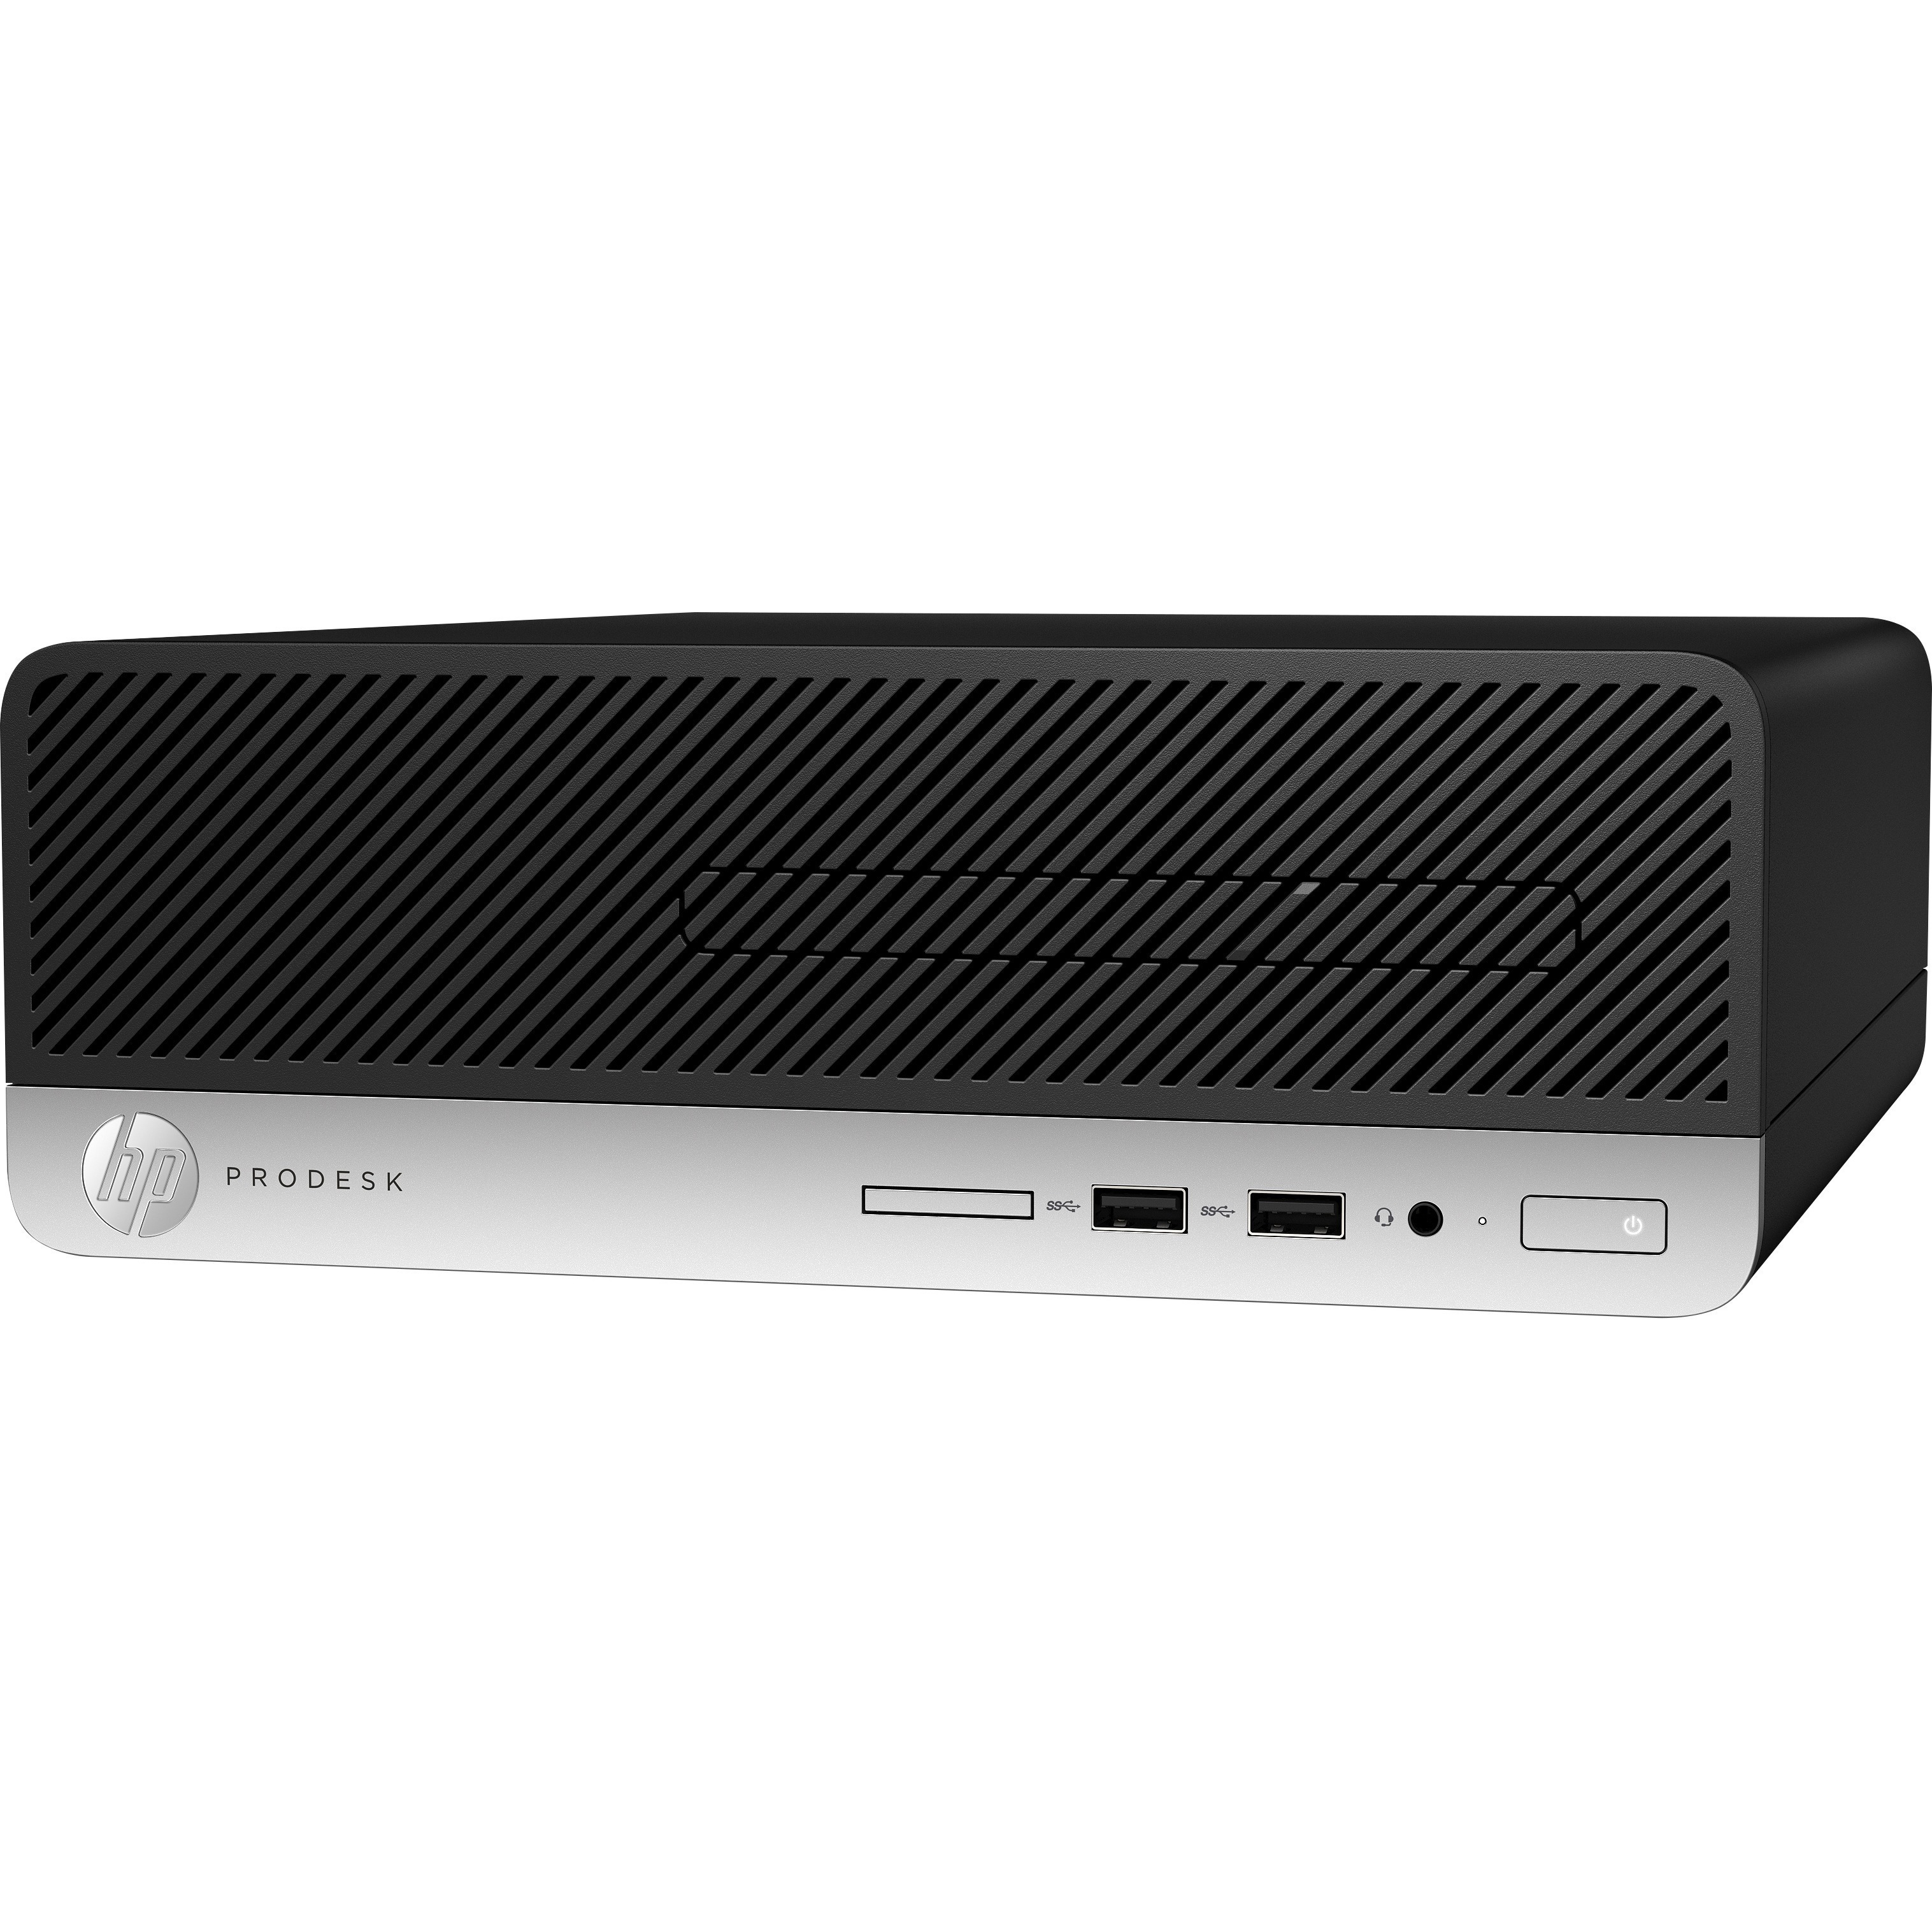 HP Business Desktop ProDesk 400 G4 Desktop Computer - Intel Core i5 6th Gen i5-6500 3.20 GHz